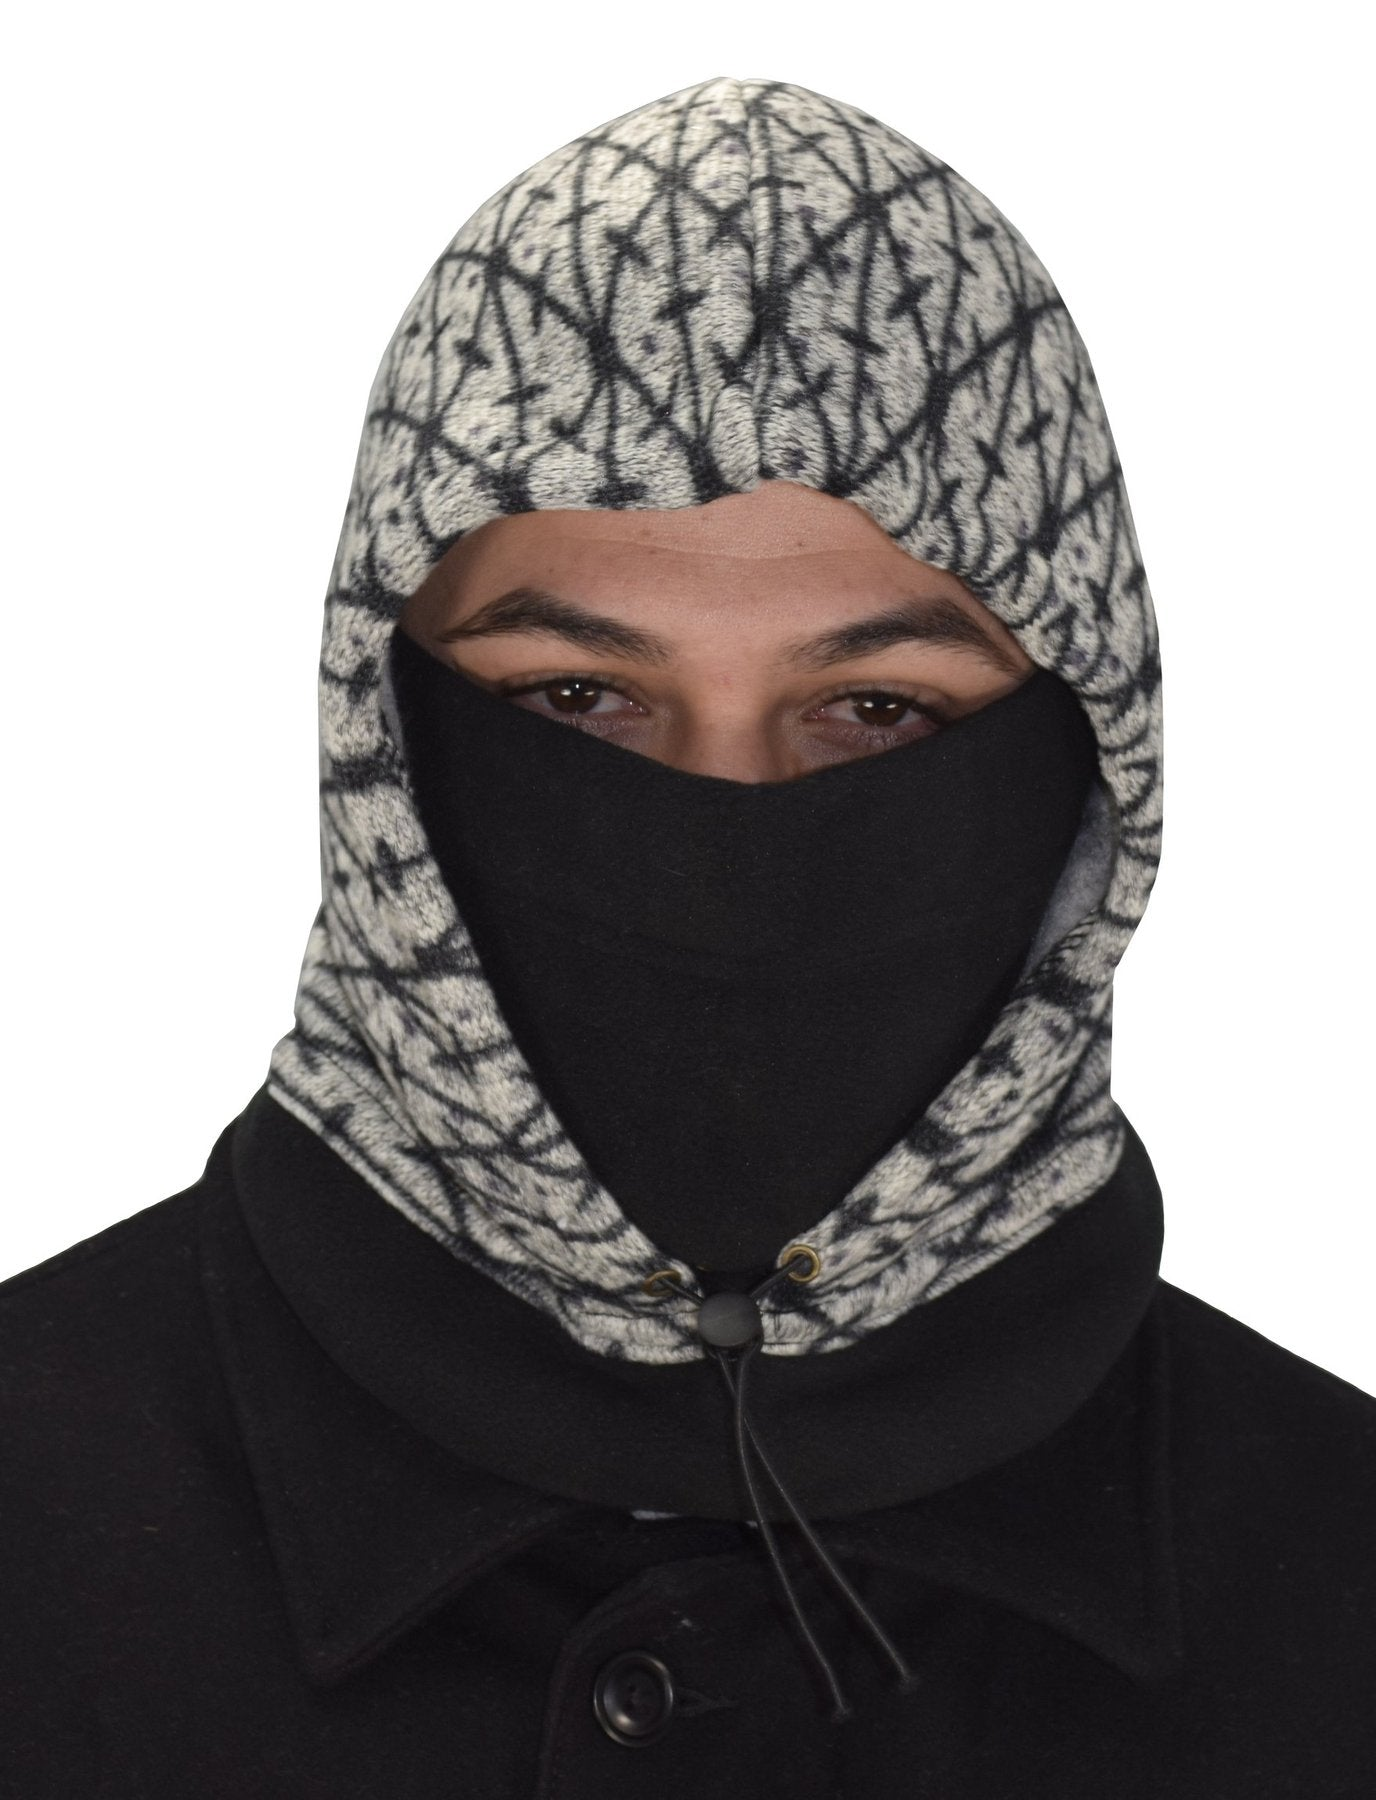 Insulated Snowboarding Balaclava Plush Lined Ski Mask